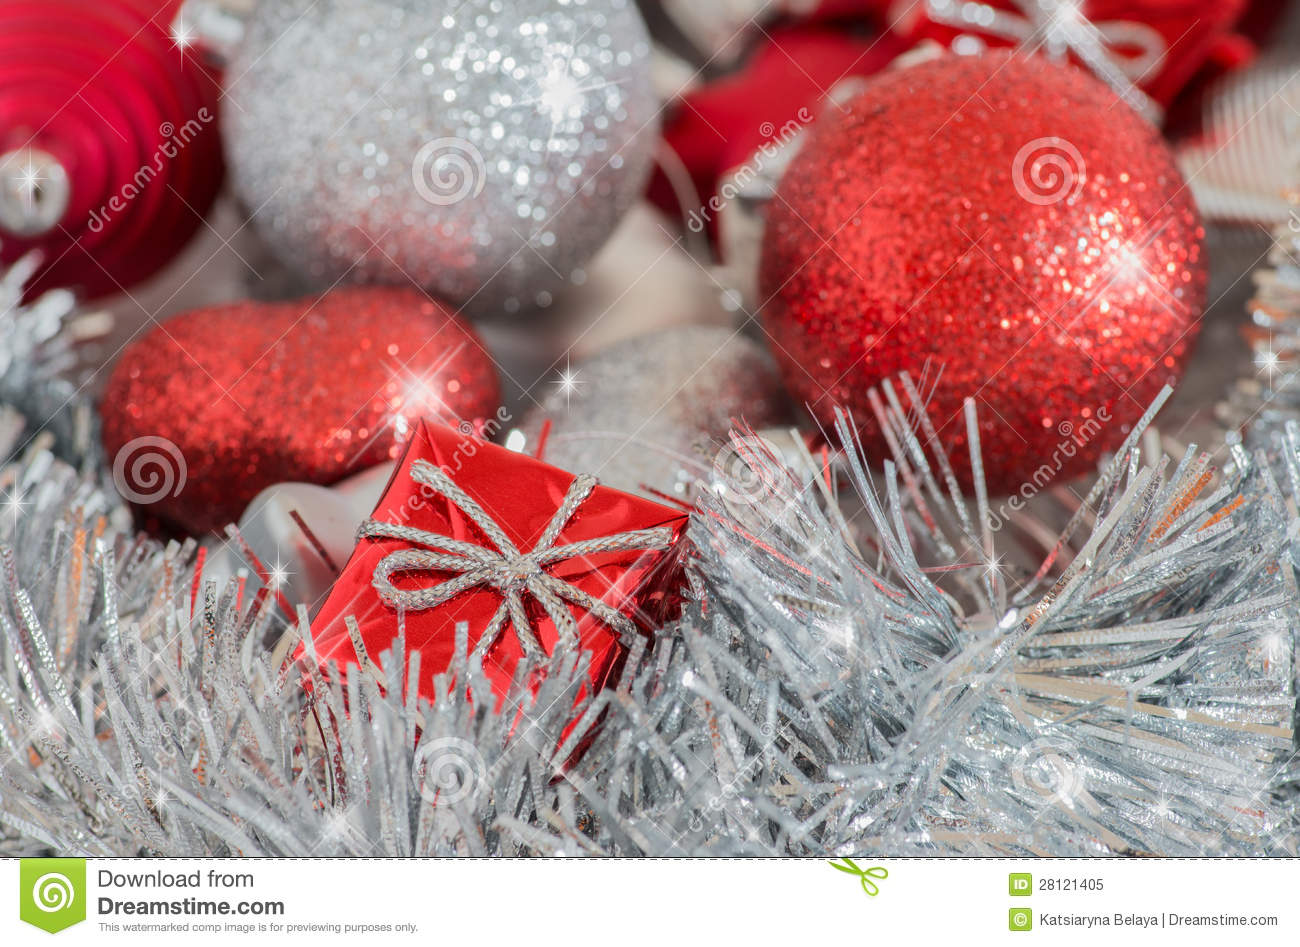 Silver and red christmas decorations royalty free stock photo image 28121405 - Red and silver centerpiece ideas ...